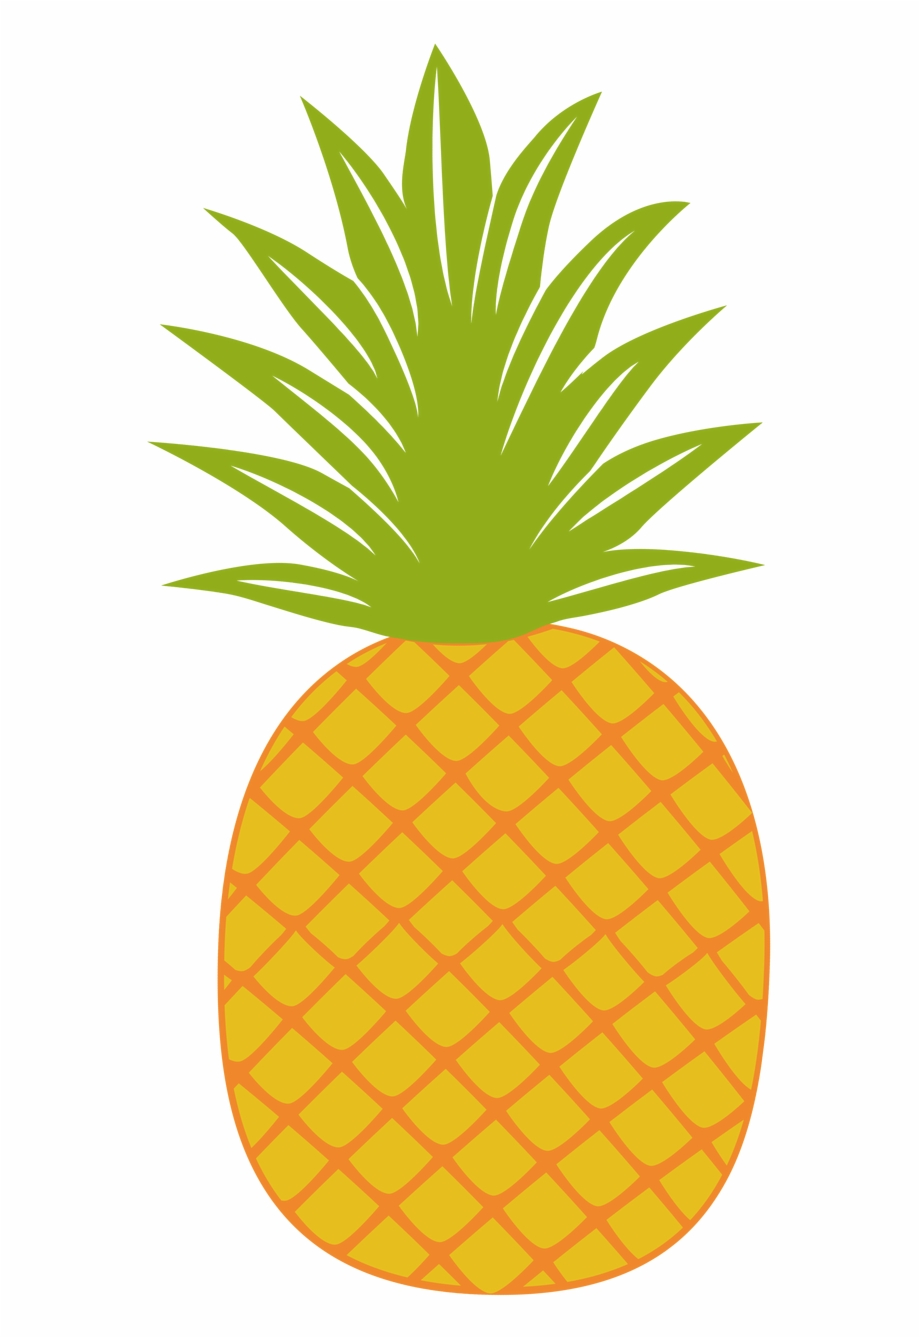 Pinaeapple clipart picture black and white library Pineapple Clipart Fancy - Balloon Free PNG Images & Clipart ... picture black and white library